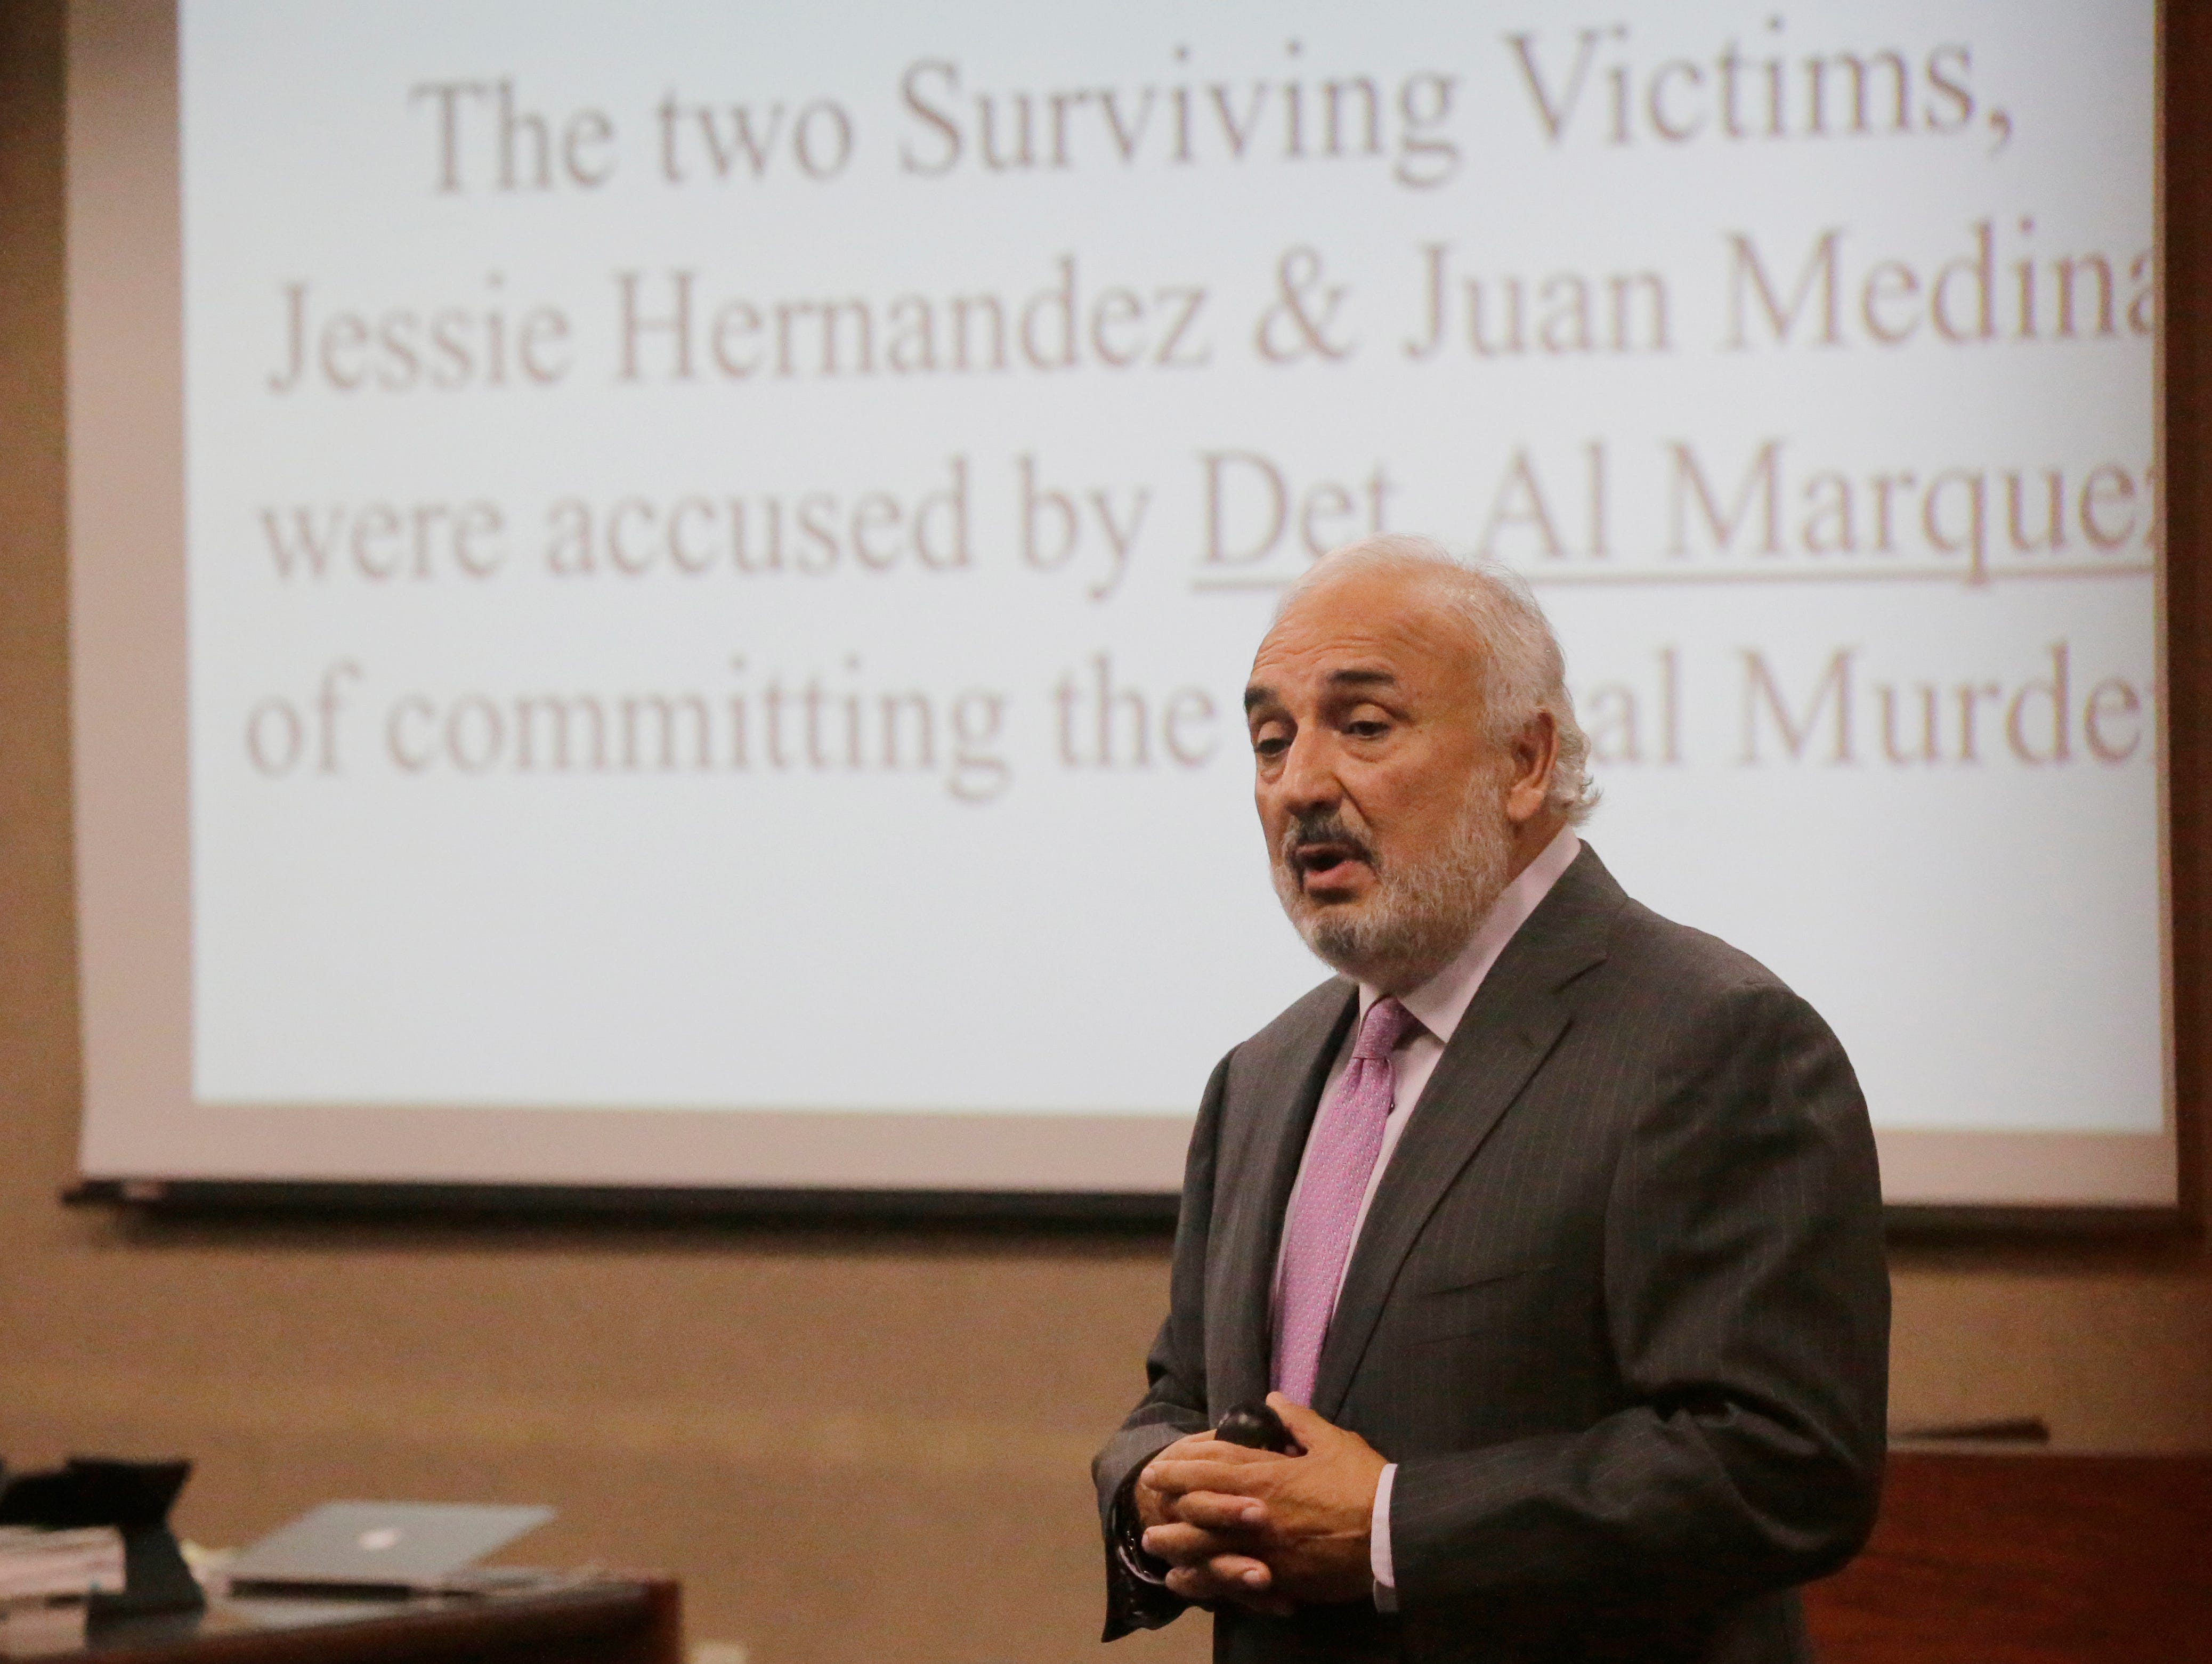 """Joe Spencer, attorney for Daniel Villegas, begins giving his opening remarks to the jury during the opening day of the trial. El Pasoan Daniel Villegas who is charged with Capital Murder in connection in the 1993 deaths of Armando """"Mando"""" Lazo and Bobby England is starting his third trial in connection with the shootings. Villegas, who was 16 years old at the time, was allegedly a member of a street gang that shot at four teens, fatally striking Lazo and England on April 10, 1993"""